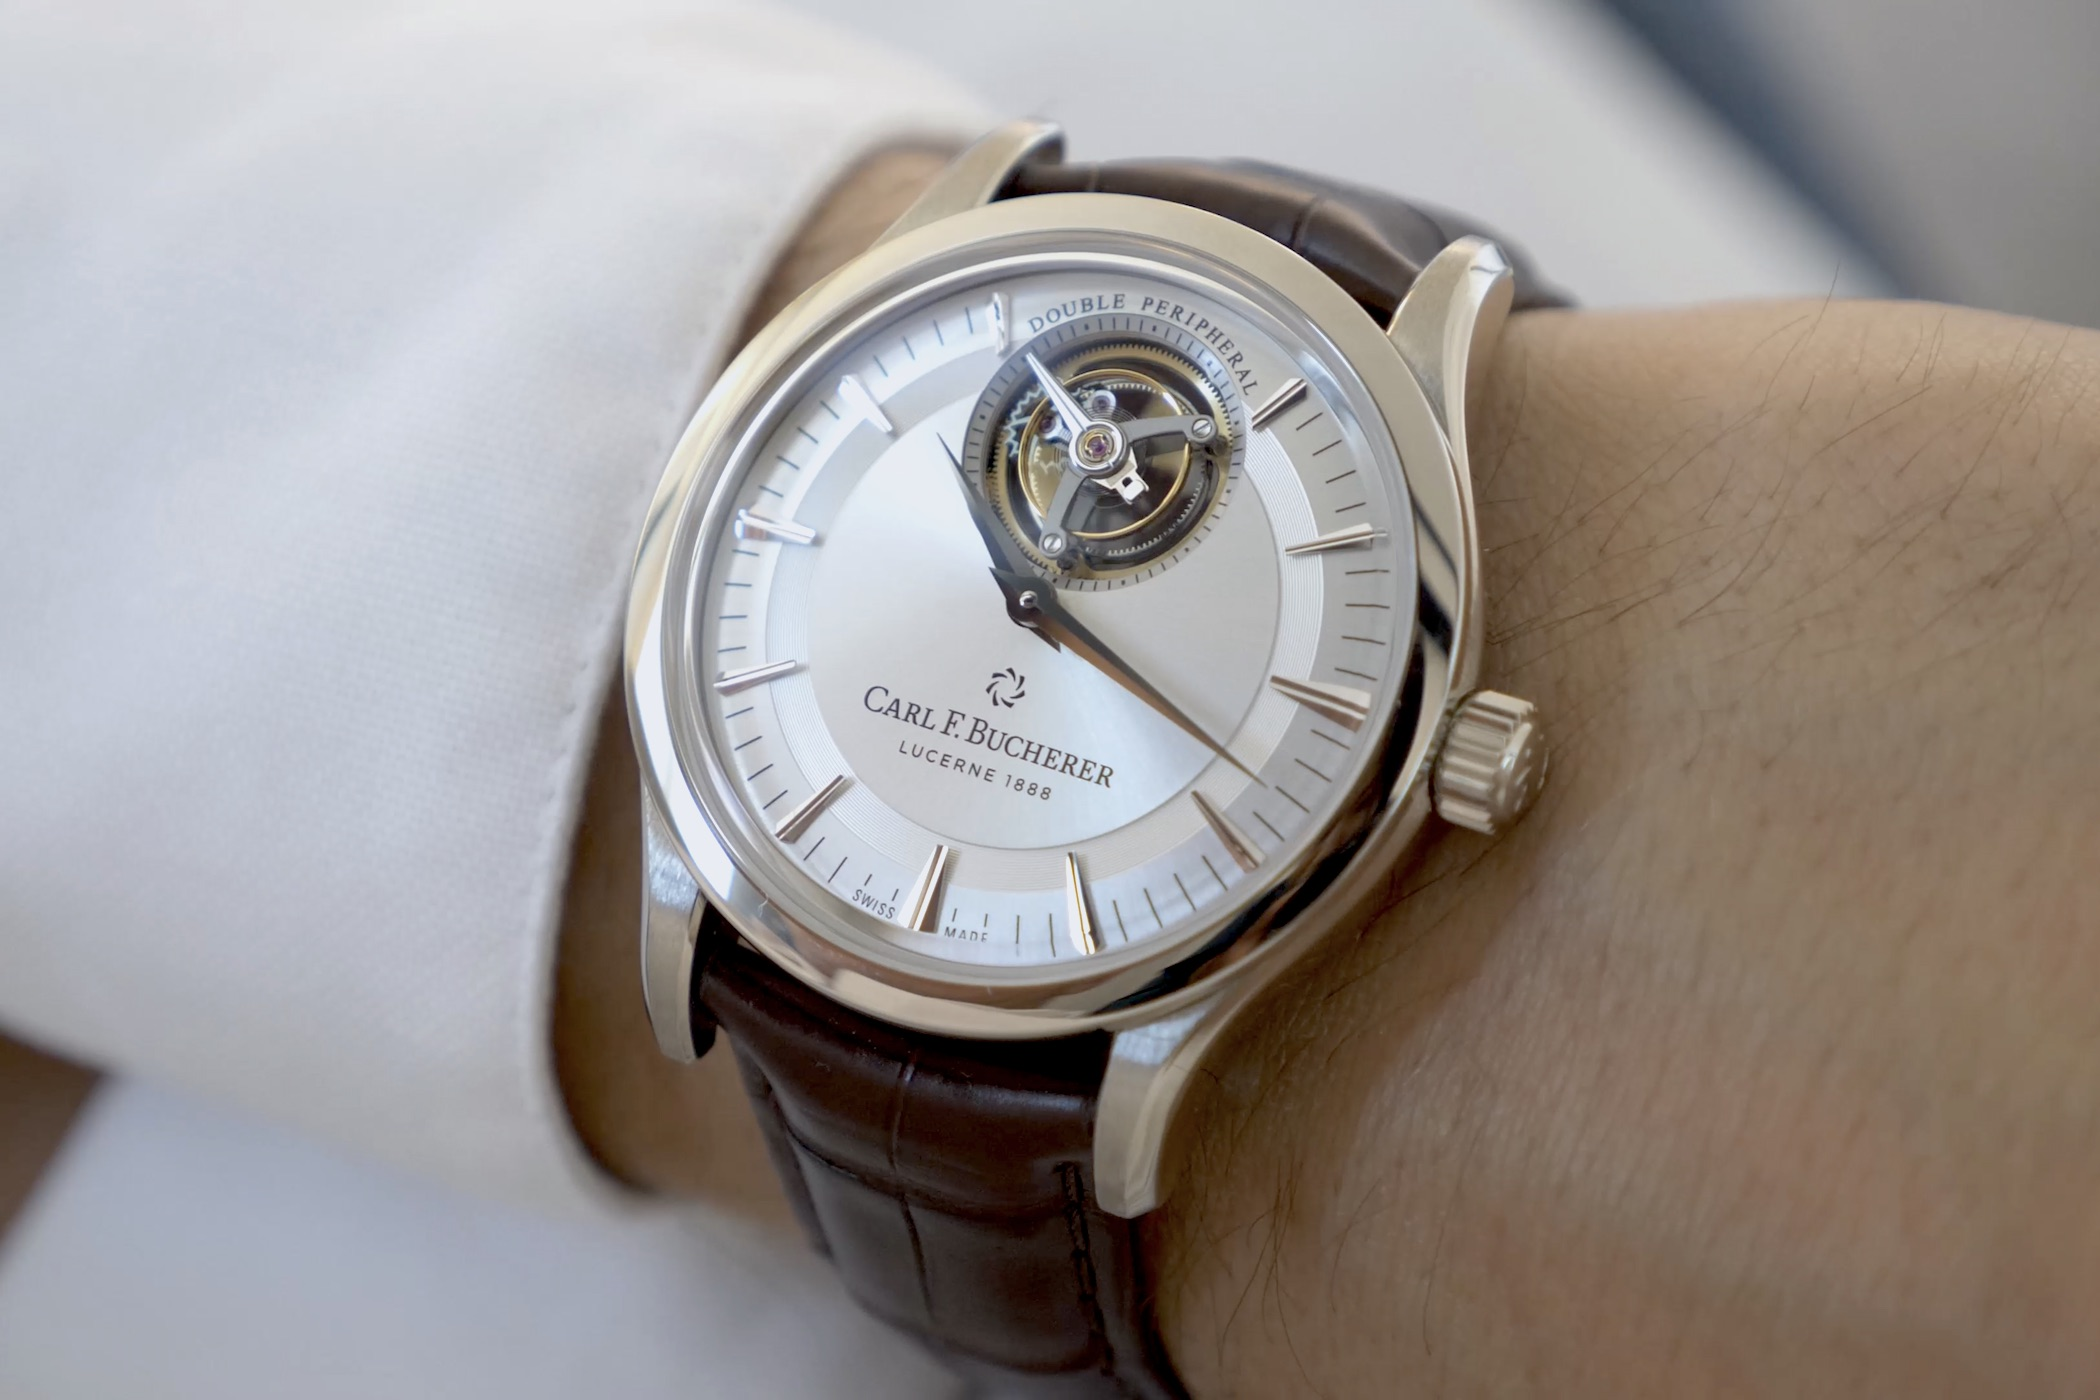 Video new watches 2020 Carl F. Bucherer